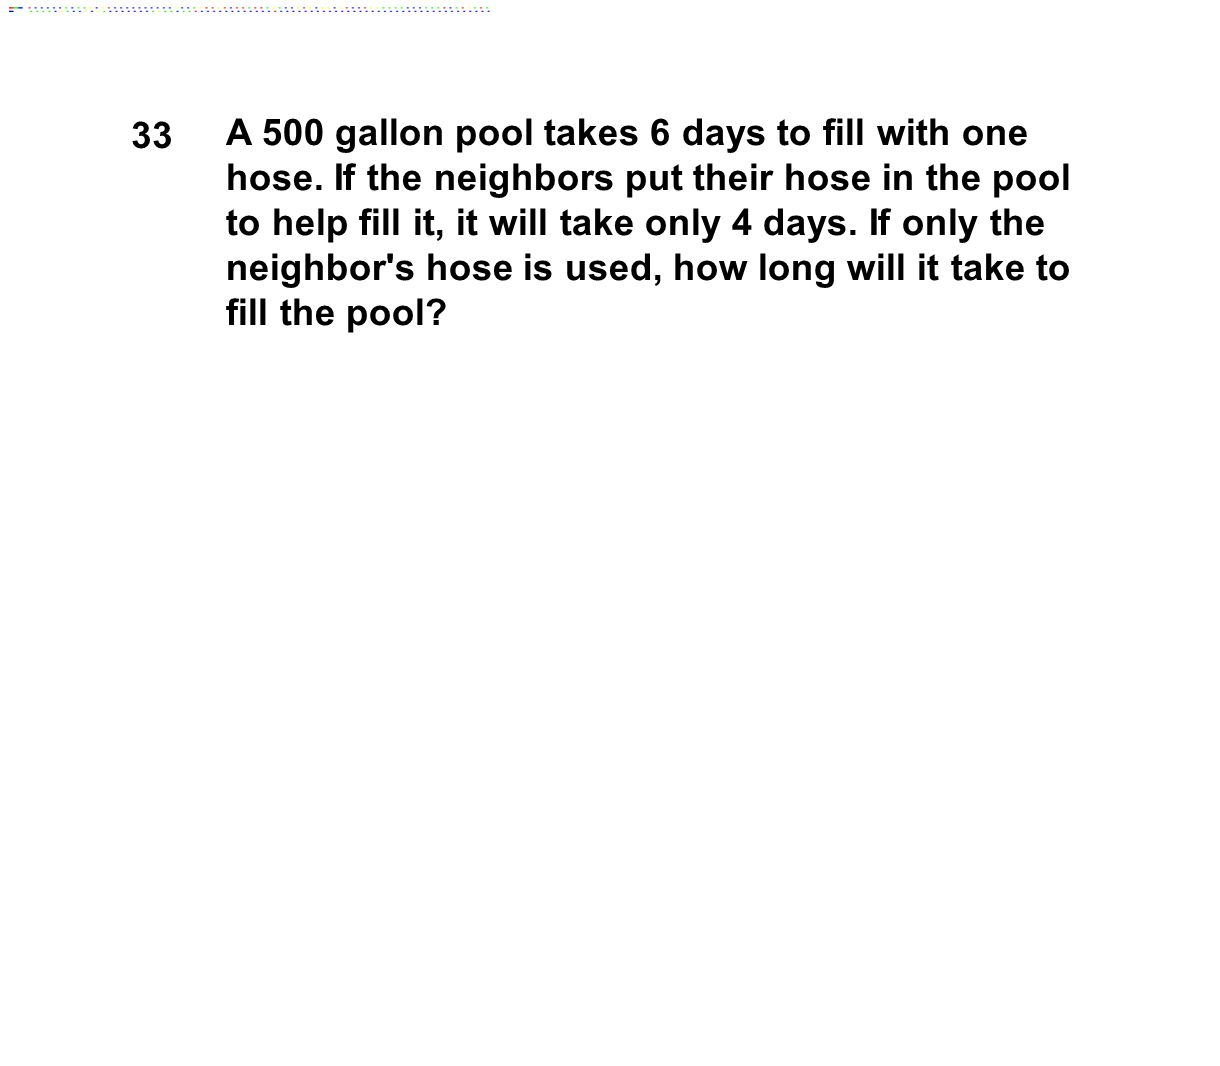 33 A 500 gallon pool takes 6 days to fill with one hose. If the neighbors put their hose in the pool to help fill it, it will take only 4 days. If onl